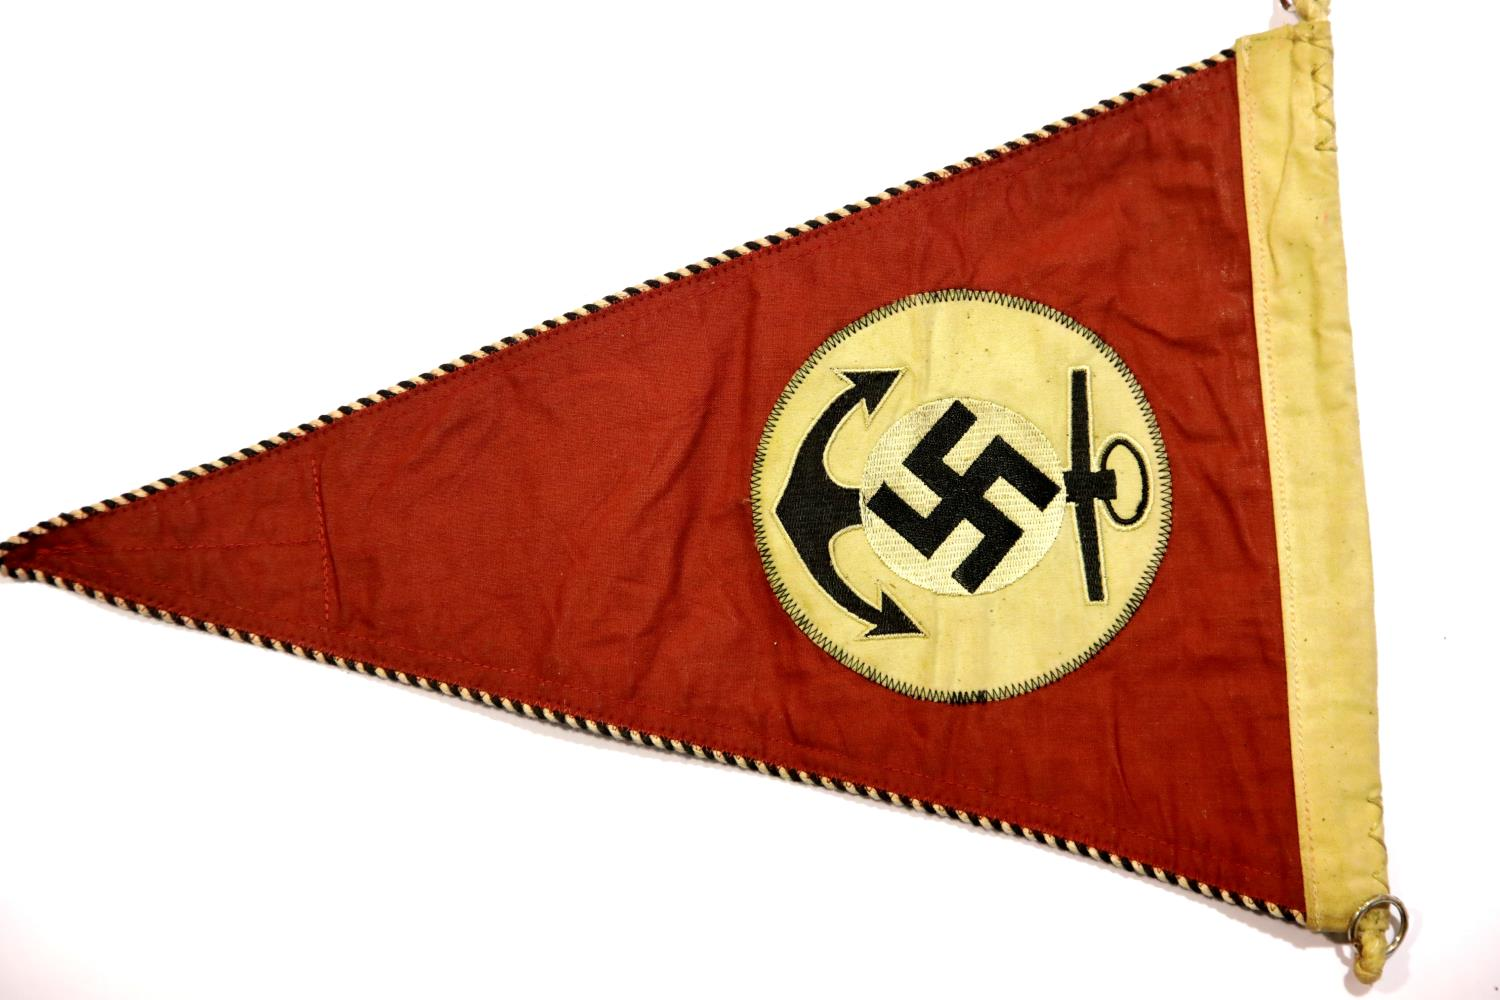 Lot 3021 - German WWII type Kriegsmarine pennant, L: 38 cm. P&P Group 1 (£14+VAT for the first lot and £1+VAT